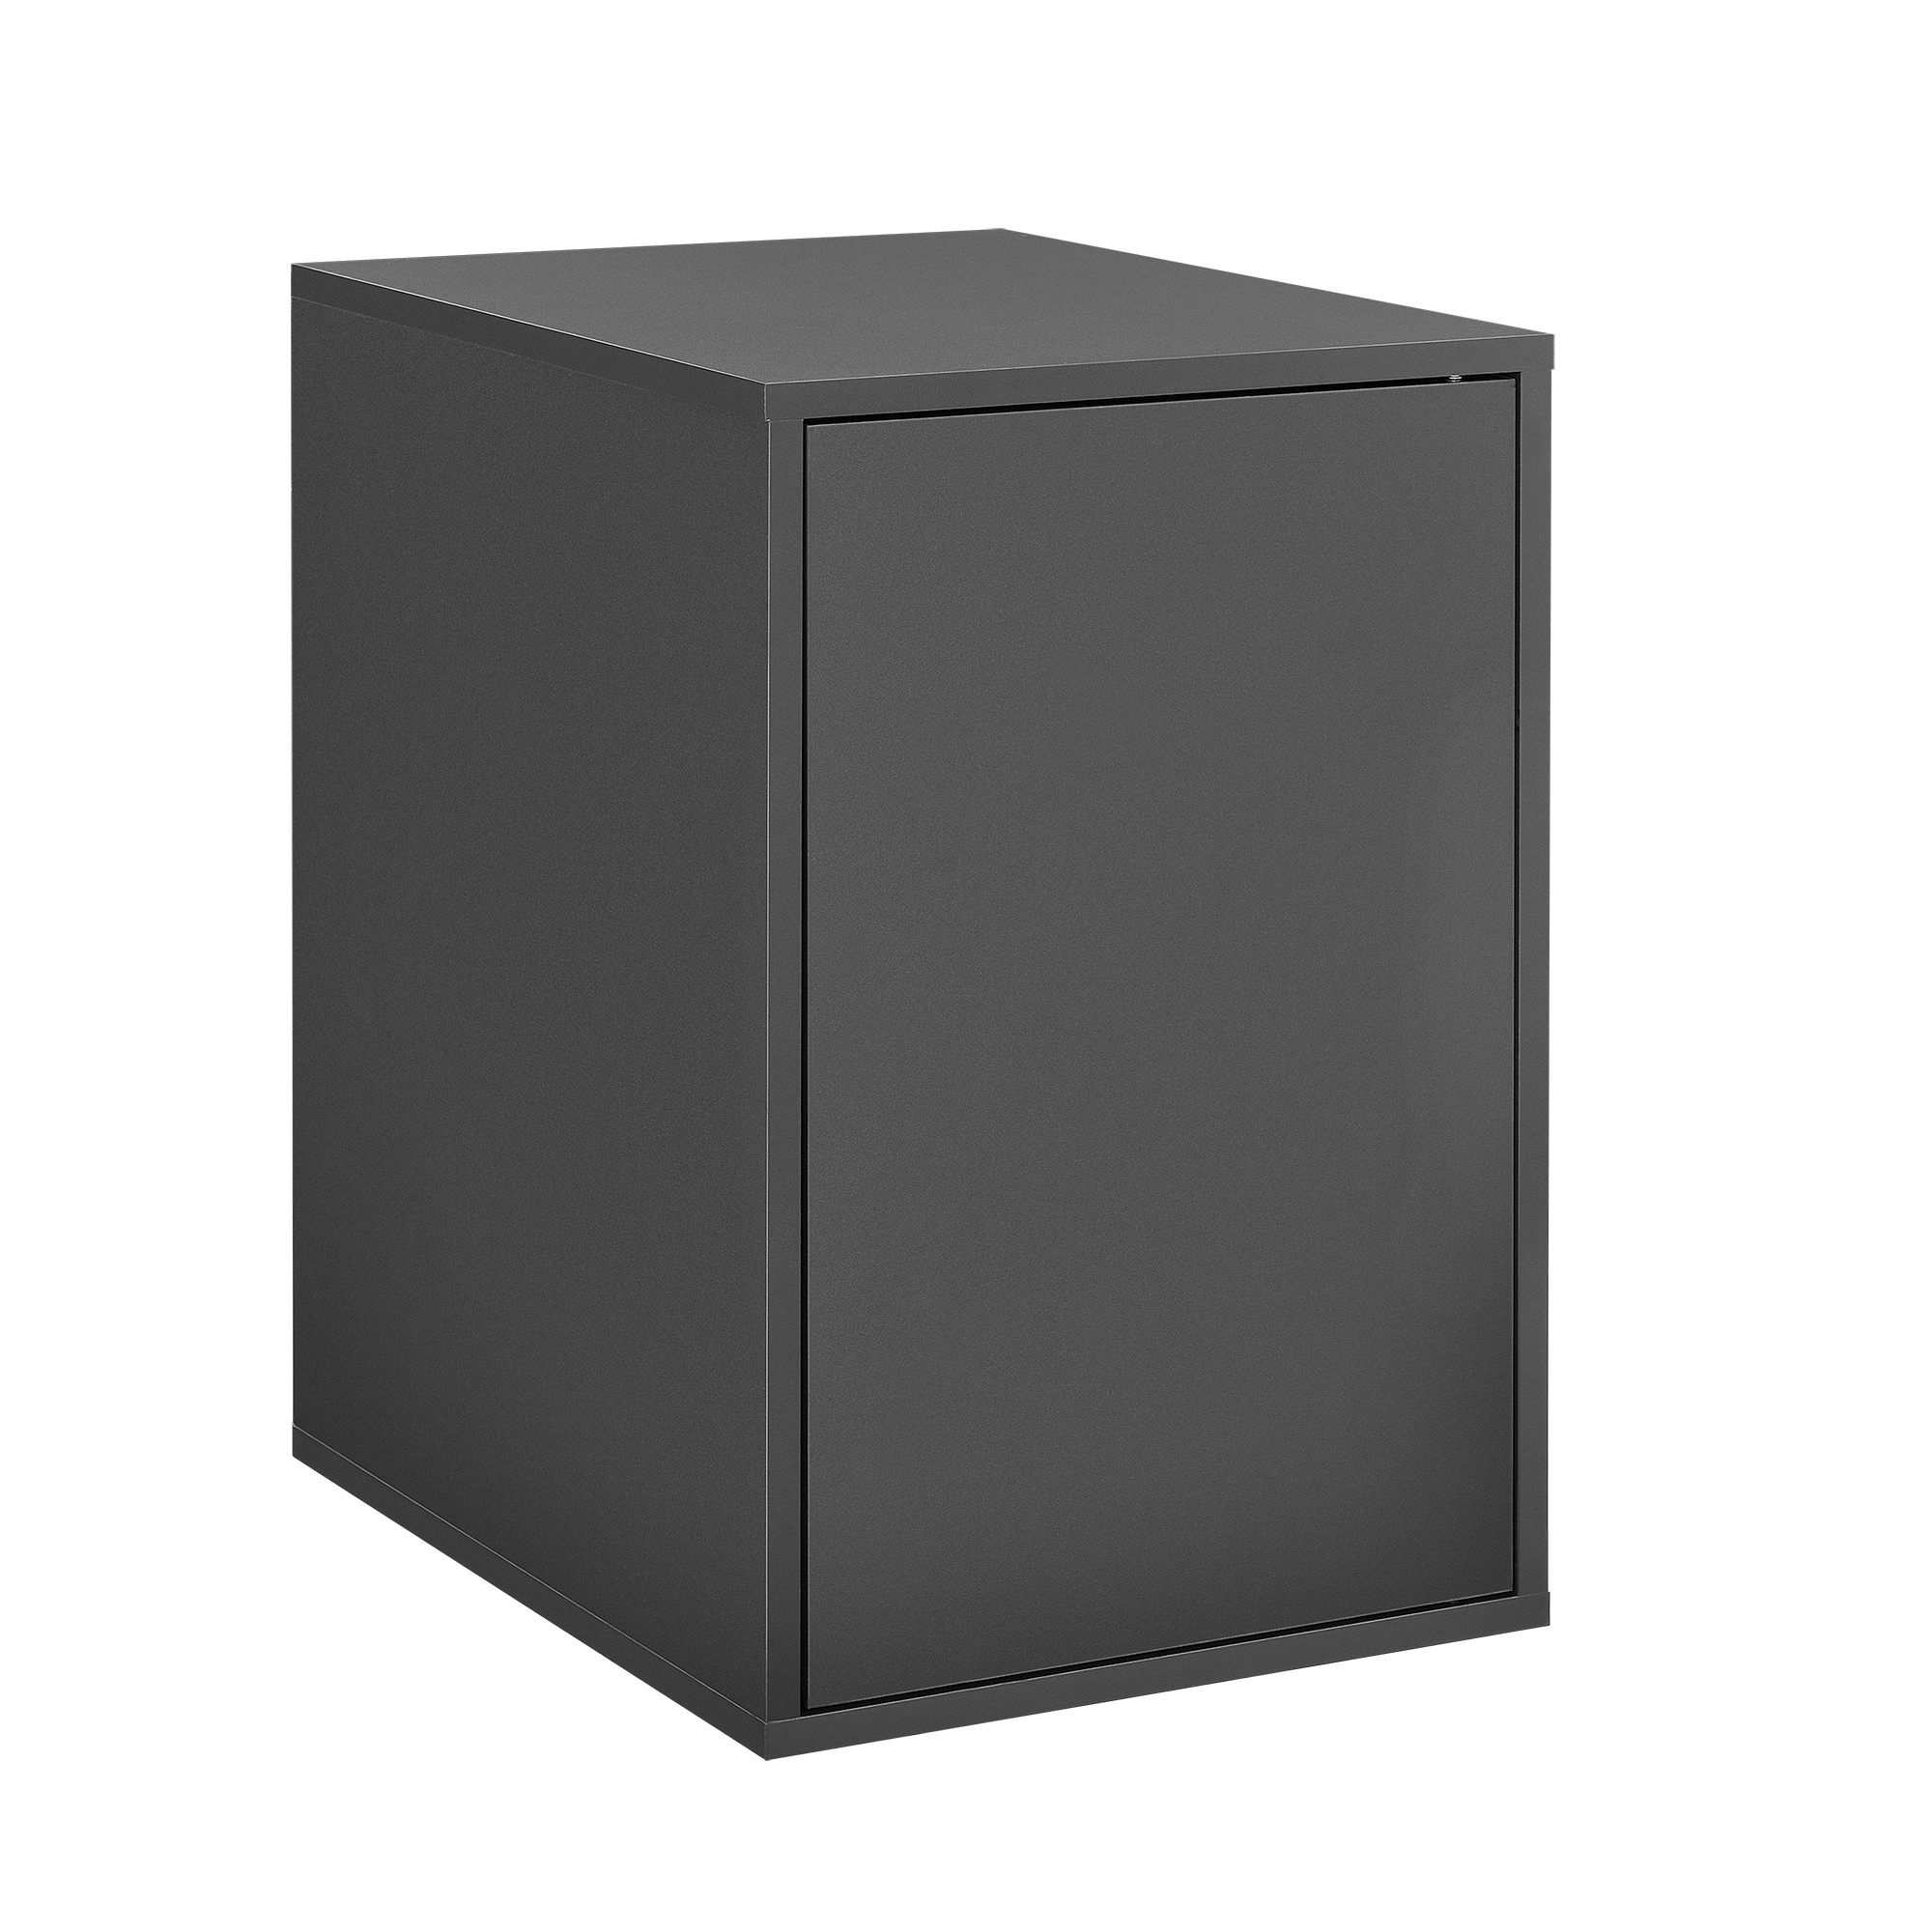 h ngeschrank 30x45x40cm grau wandschrank schrank wandregal regal ebay. Black Bedroom Furniture Sets. Home Design Ideas